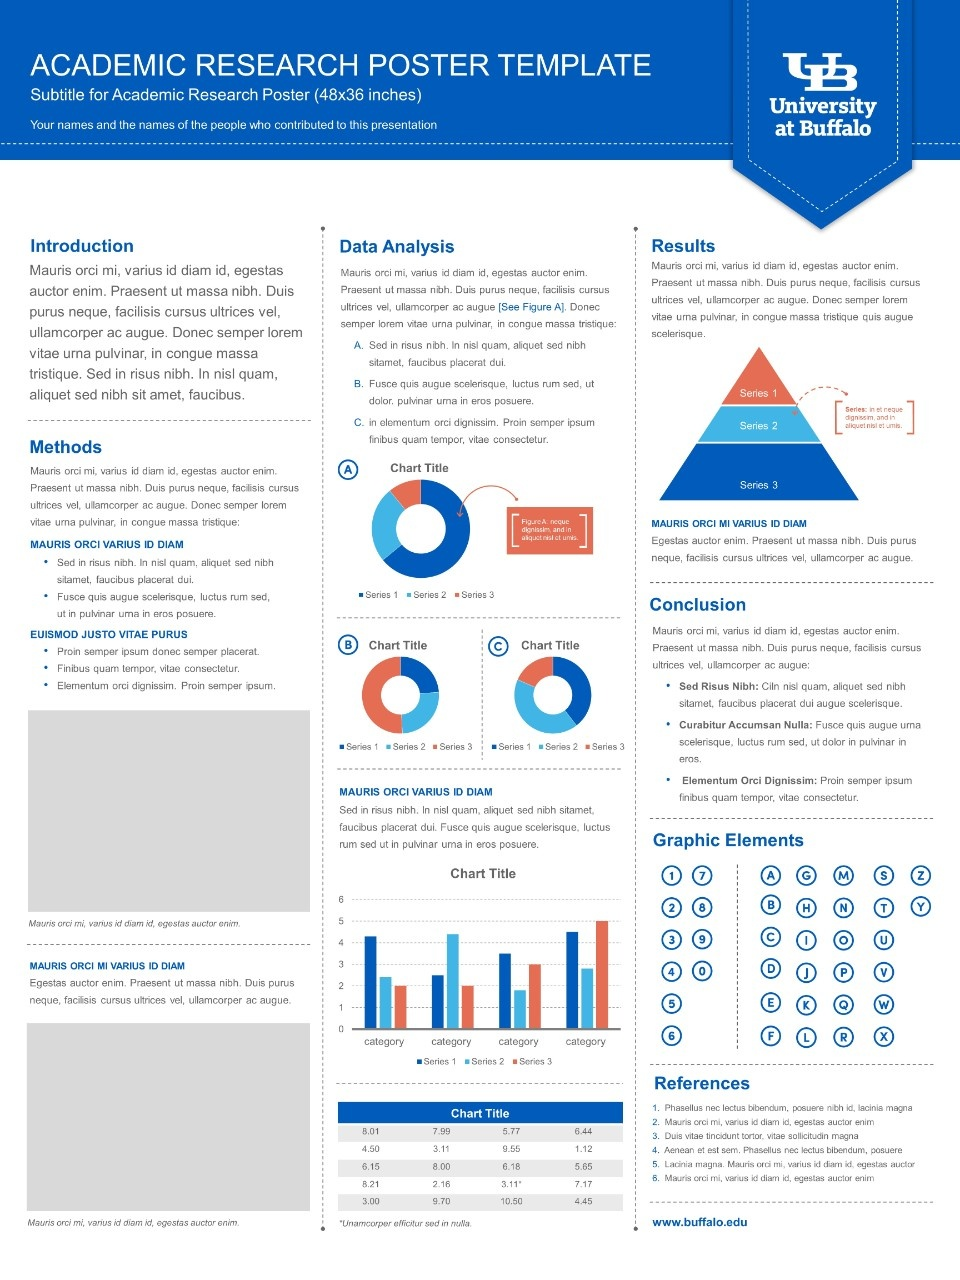 presentation templates - university at buffalo school of social, Modern powerpoint